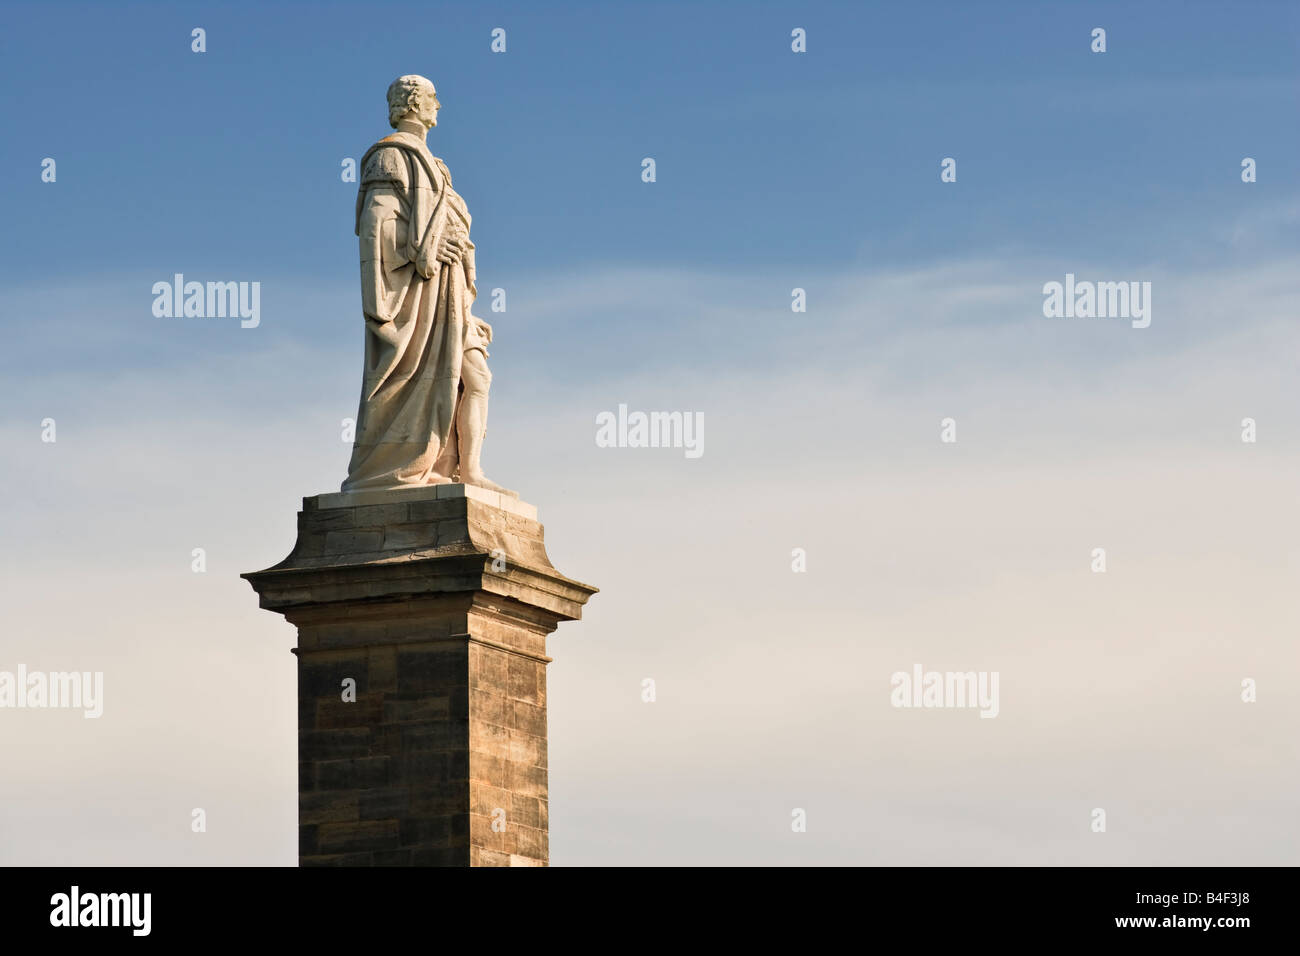 Monument to Admiral Lord Collingwood situated near Tynemouth overlooking the River Tyne, North Tyneside, England Stock Photo